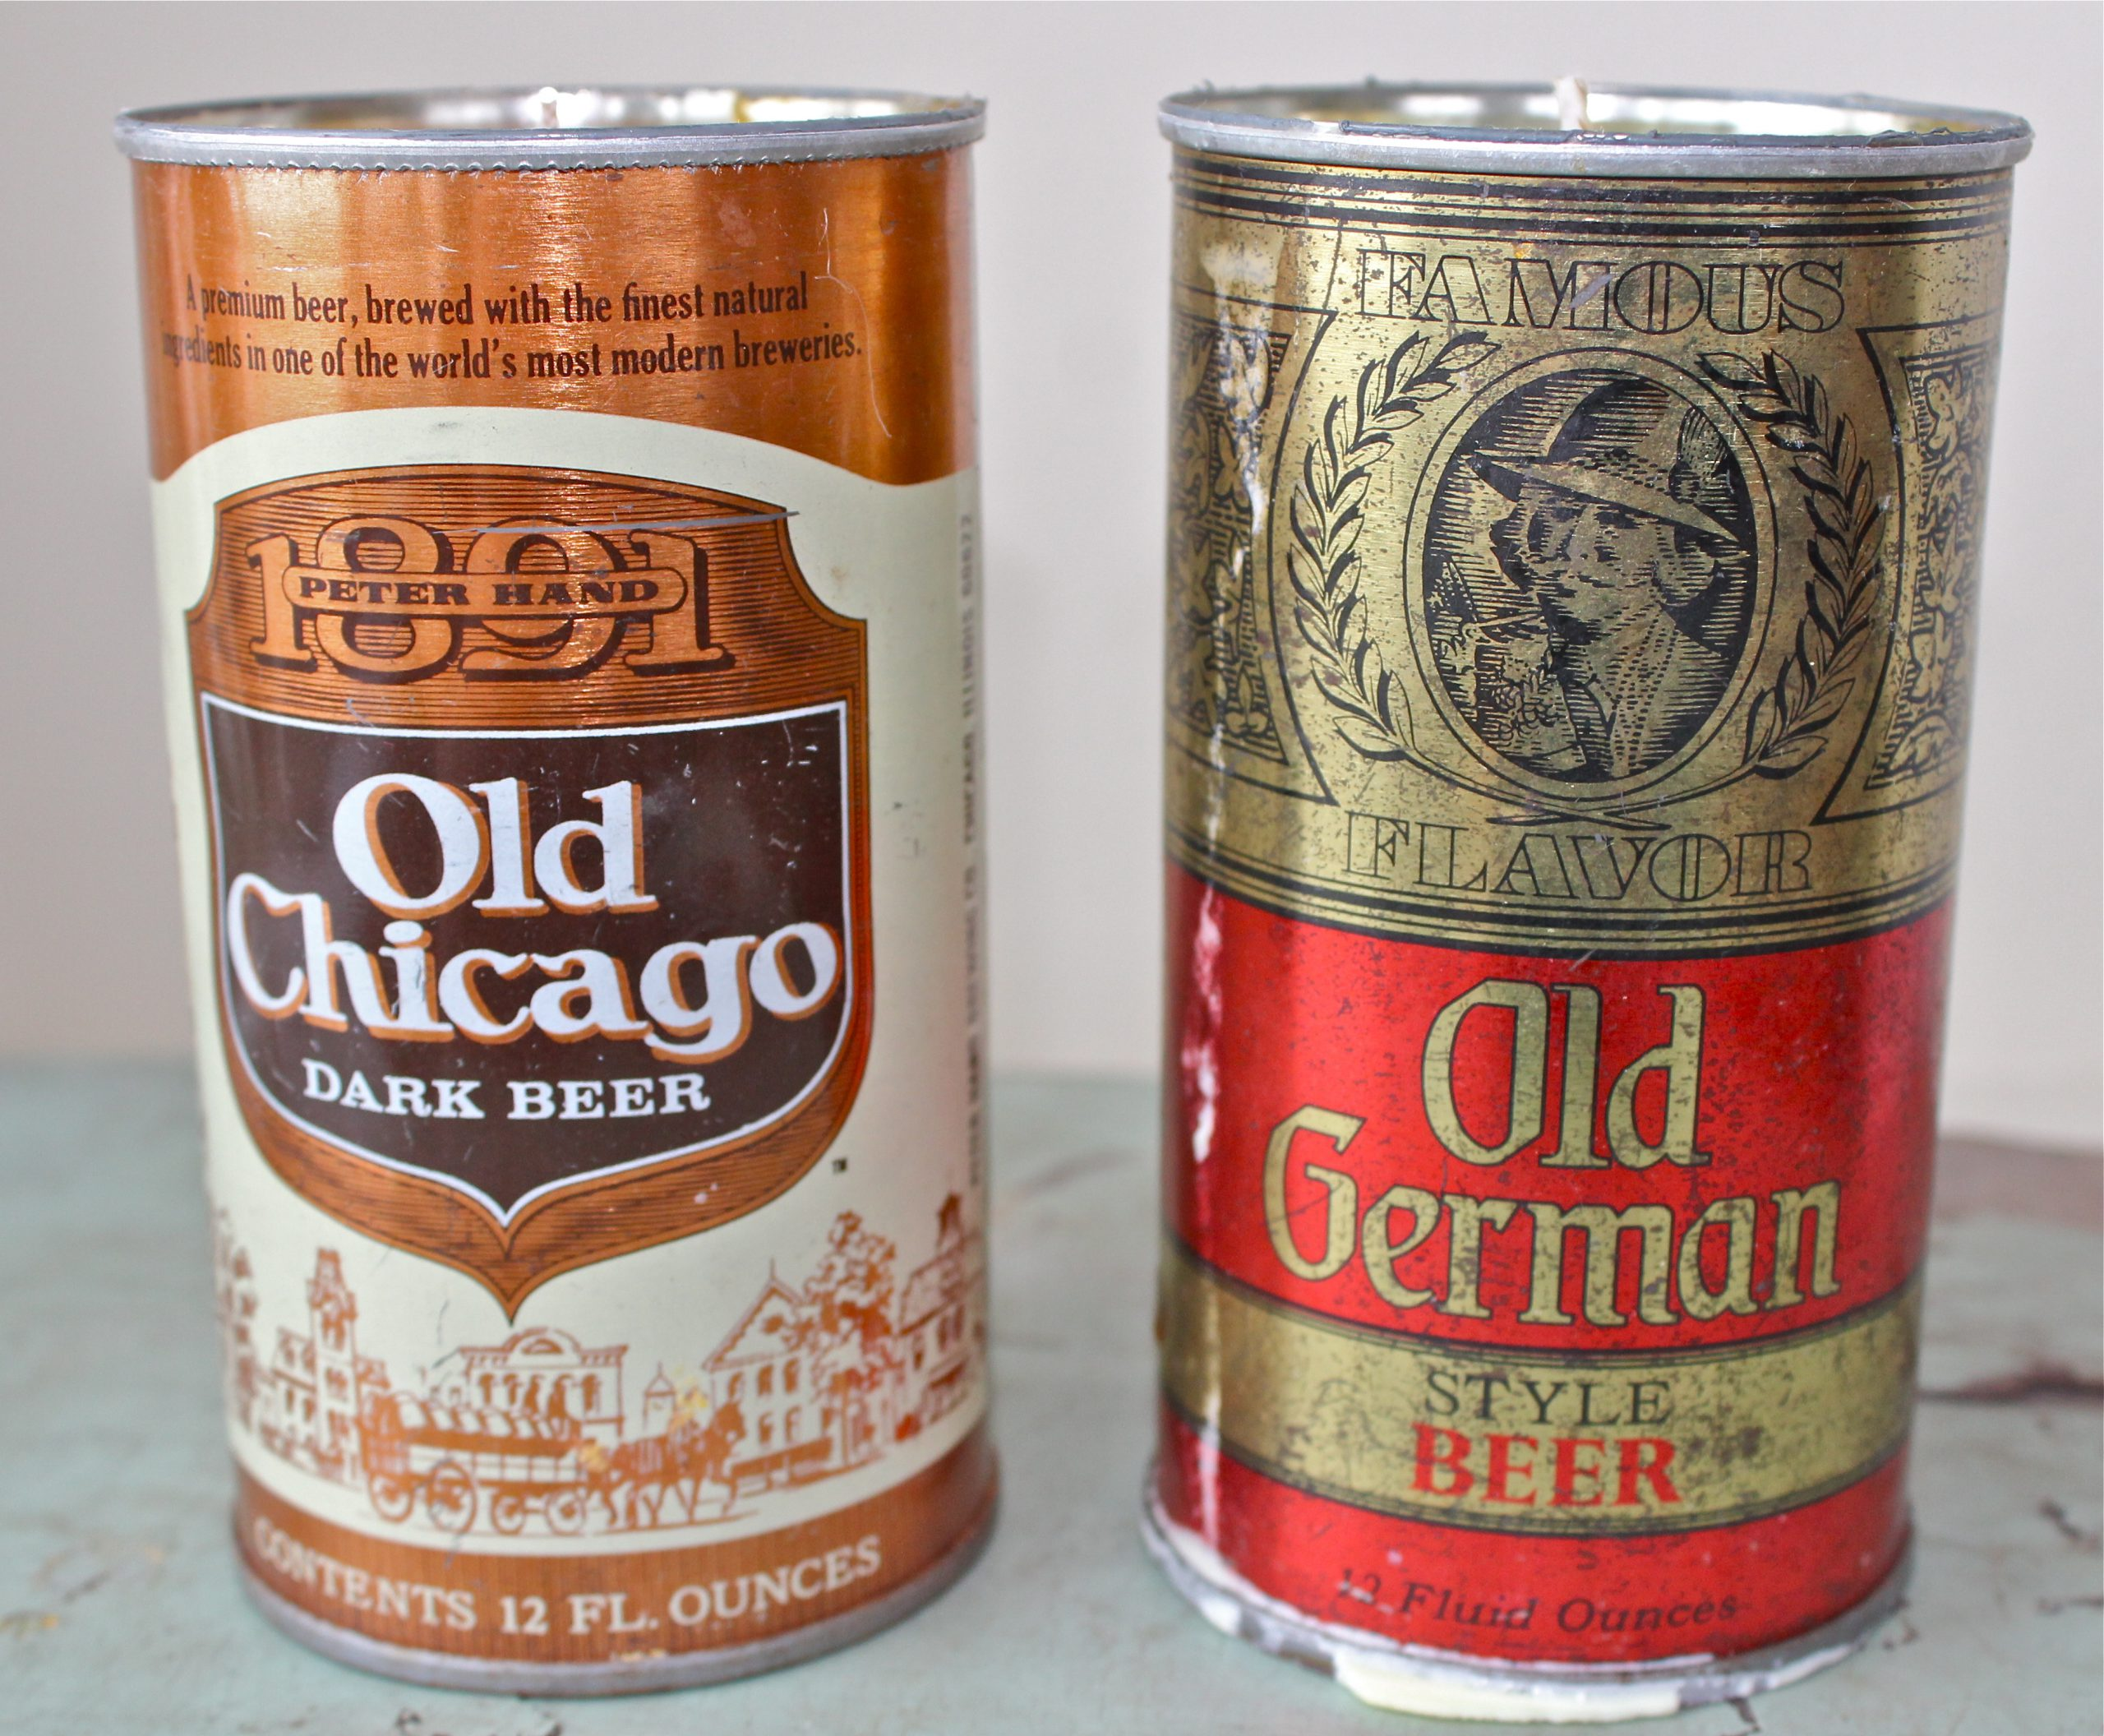 Peter Hand Old Chicago and Old German Beer